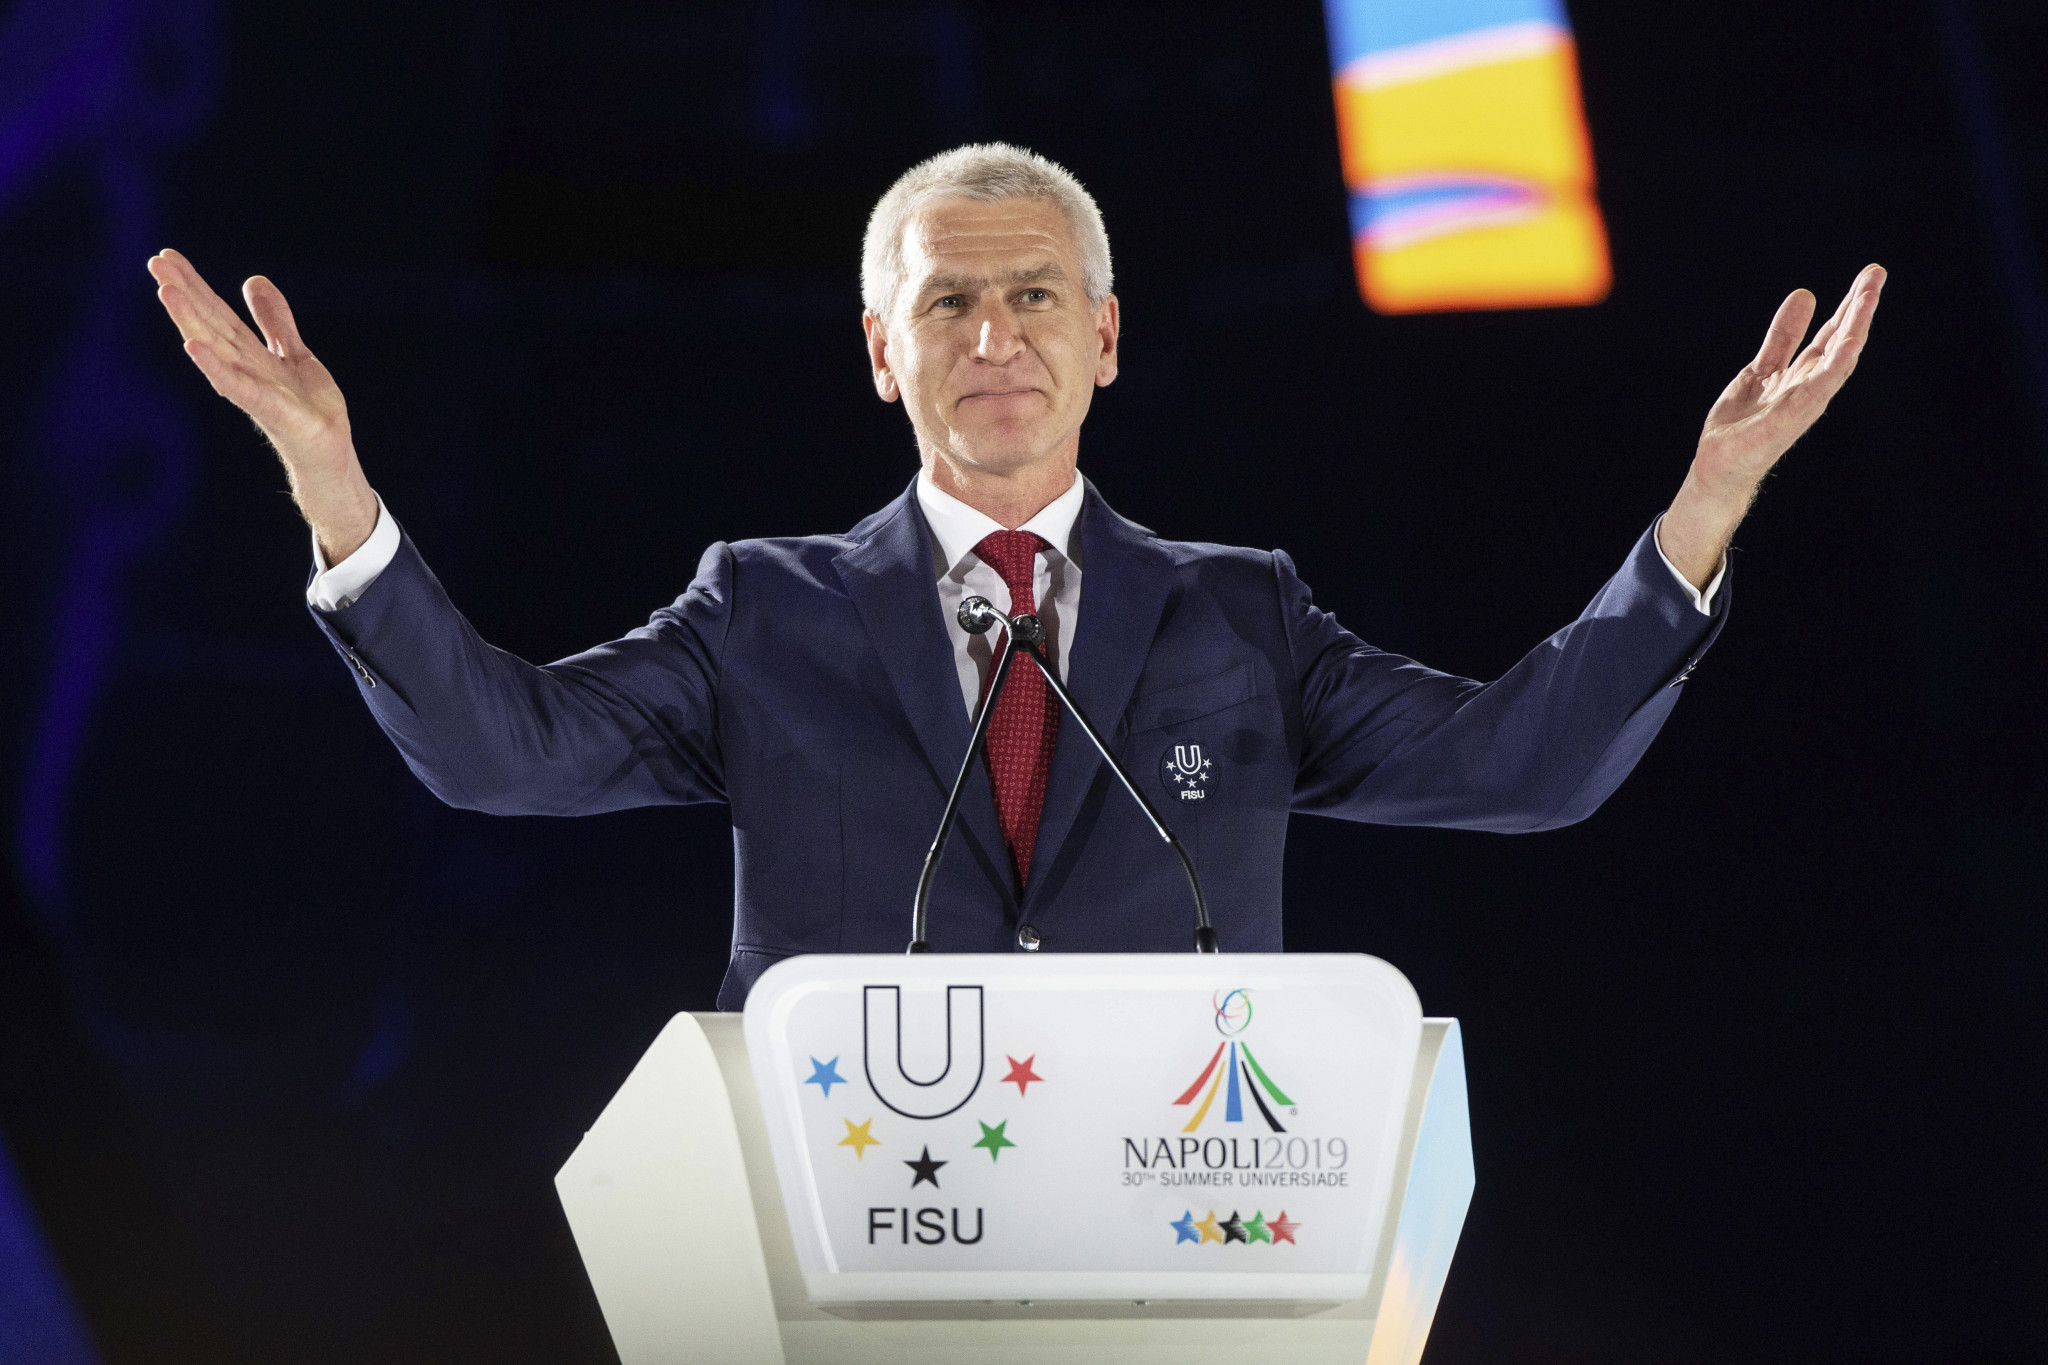 Matytsin poised to secure second term as FISU President